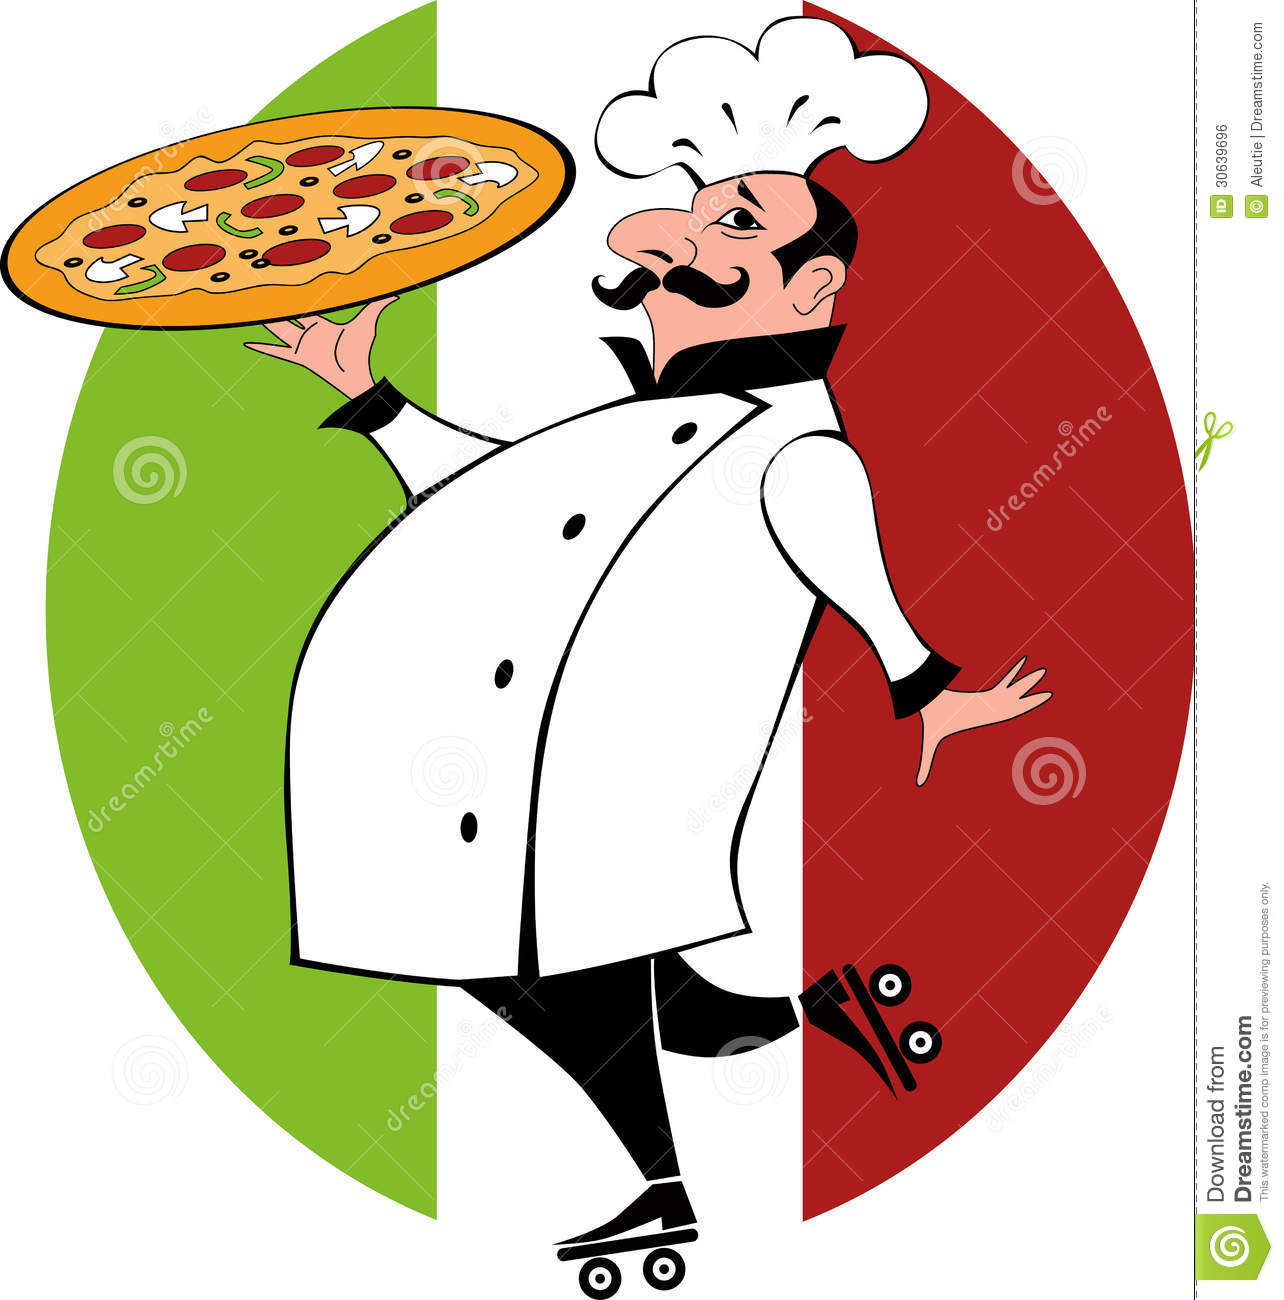 Pizza delivery guy stock vector. Illustration of serving - 30639696